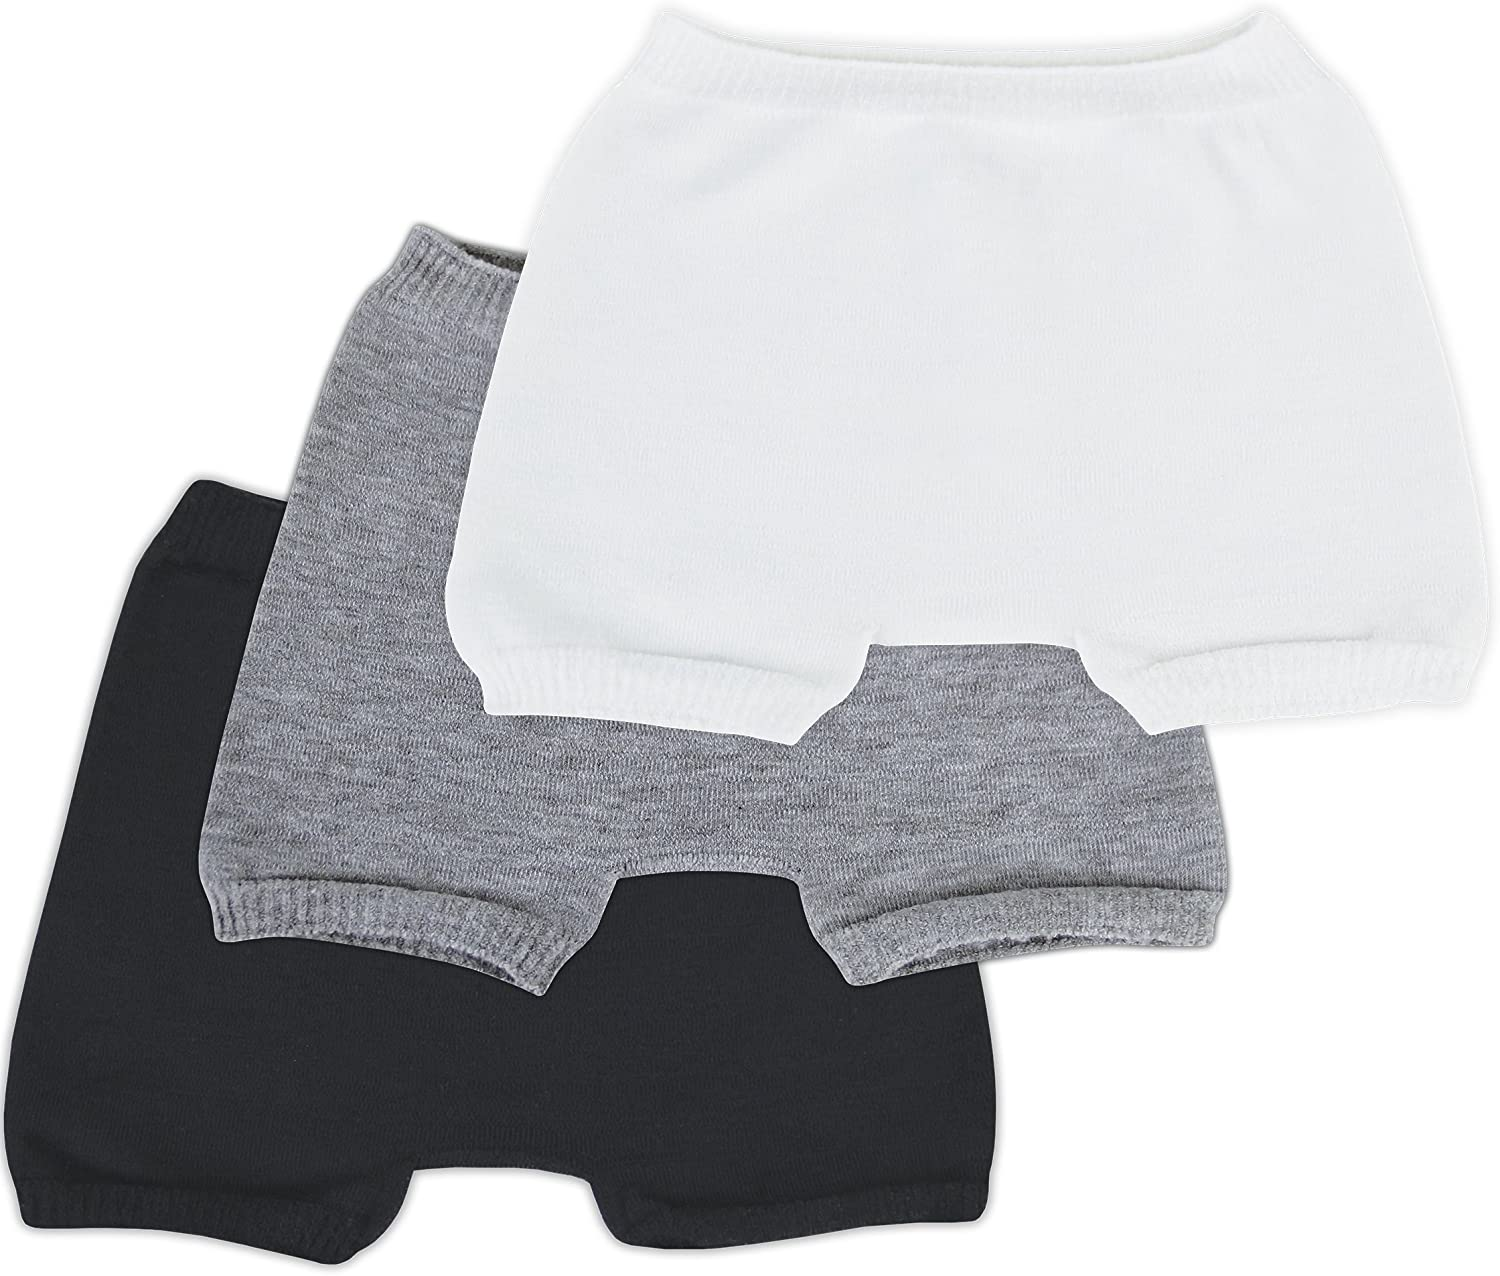 Image result for SmartKnitKIDS boys Boy Cut Style Seamless Sensitivity Undies 3 Pack